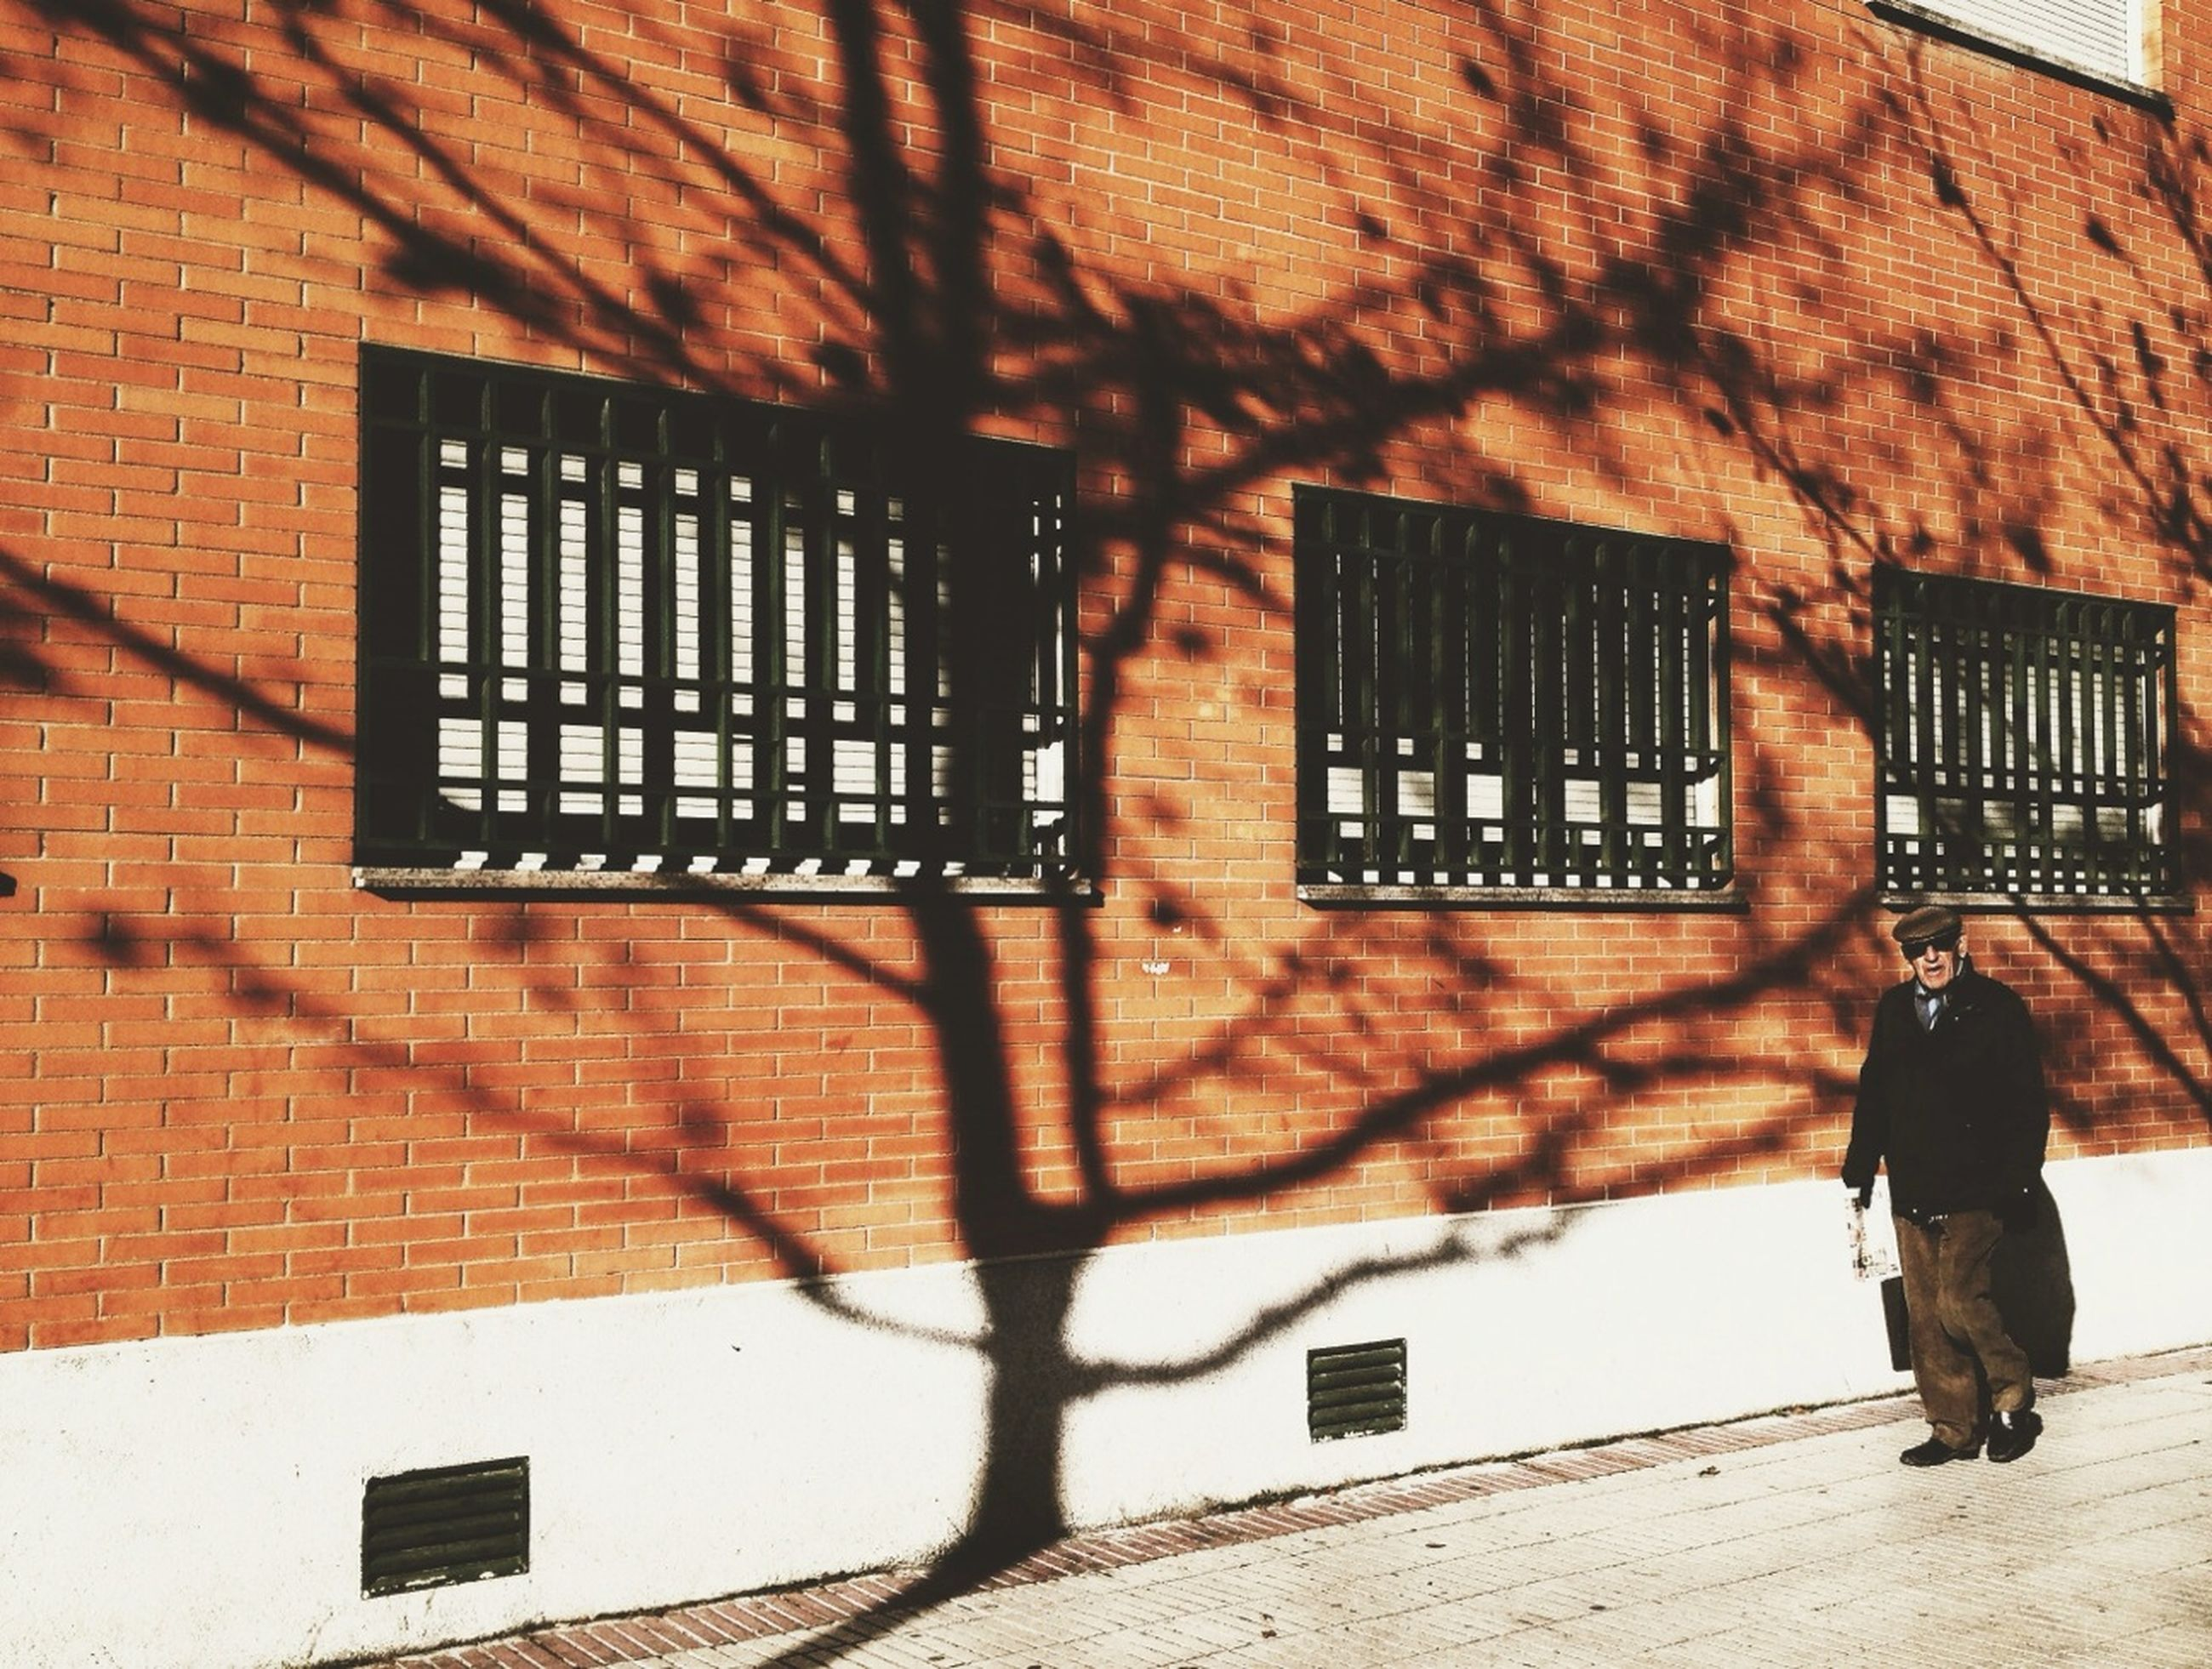 architecture, building exterior, built structure, brick wall, wall - building feature, lifestyles, window, leisure activity, men, house, shadow, building, outdoors, person, wall, sunlight, day, full length